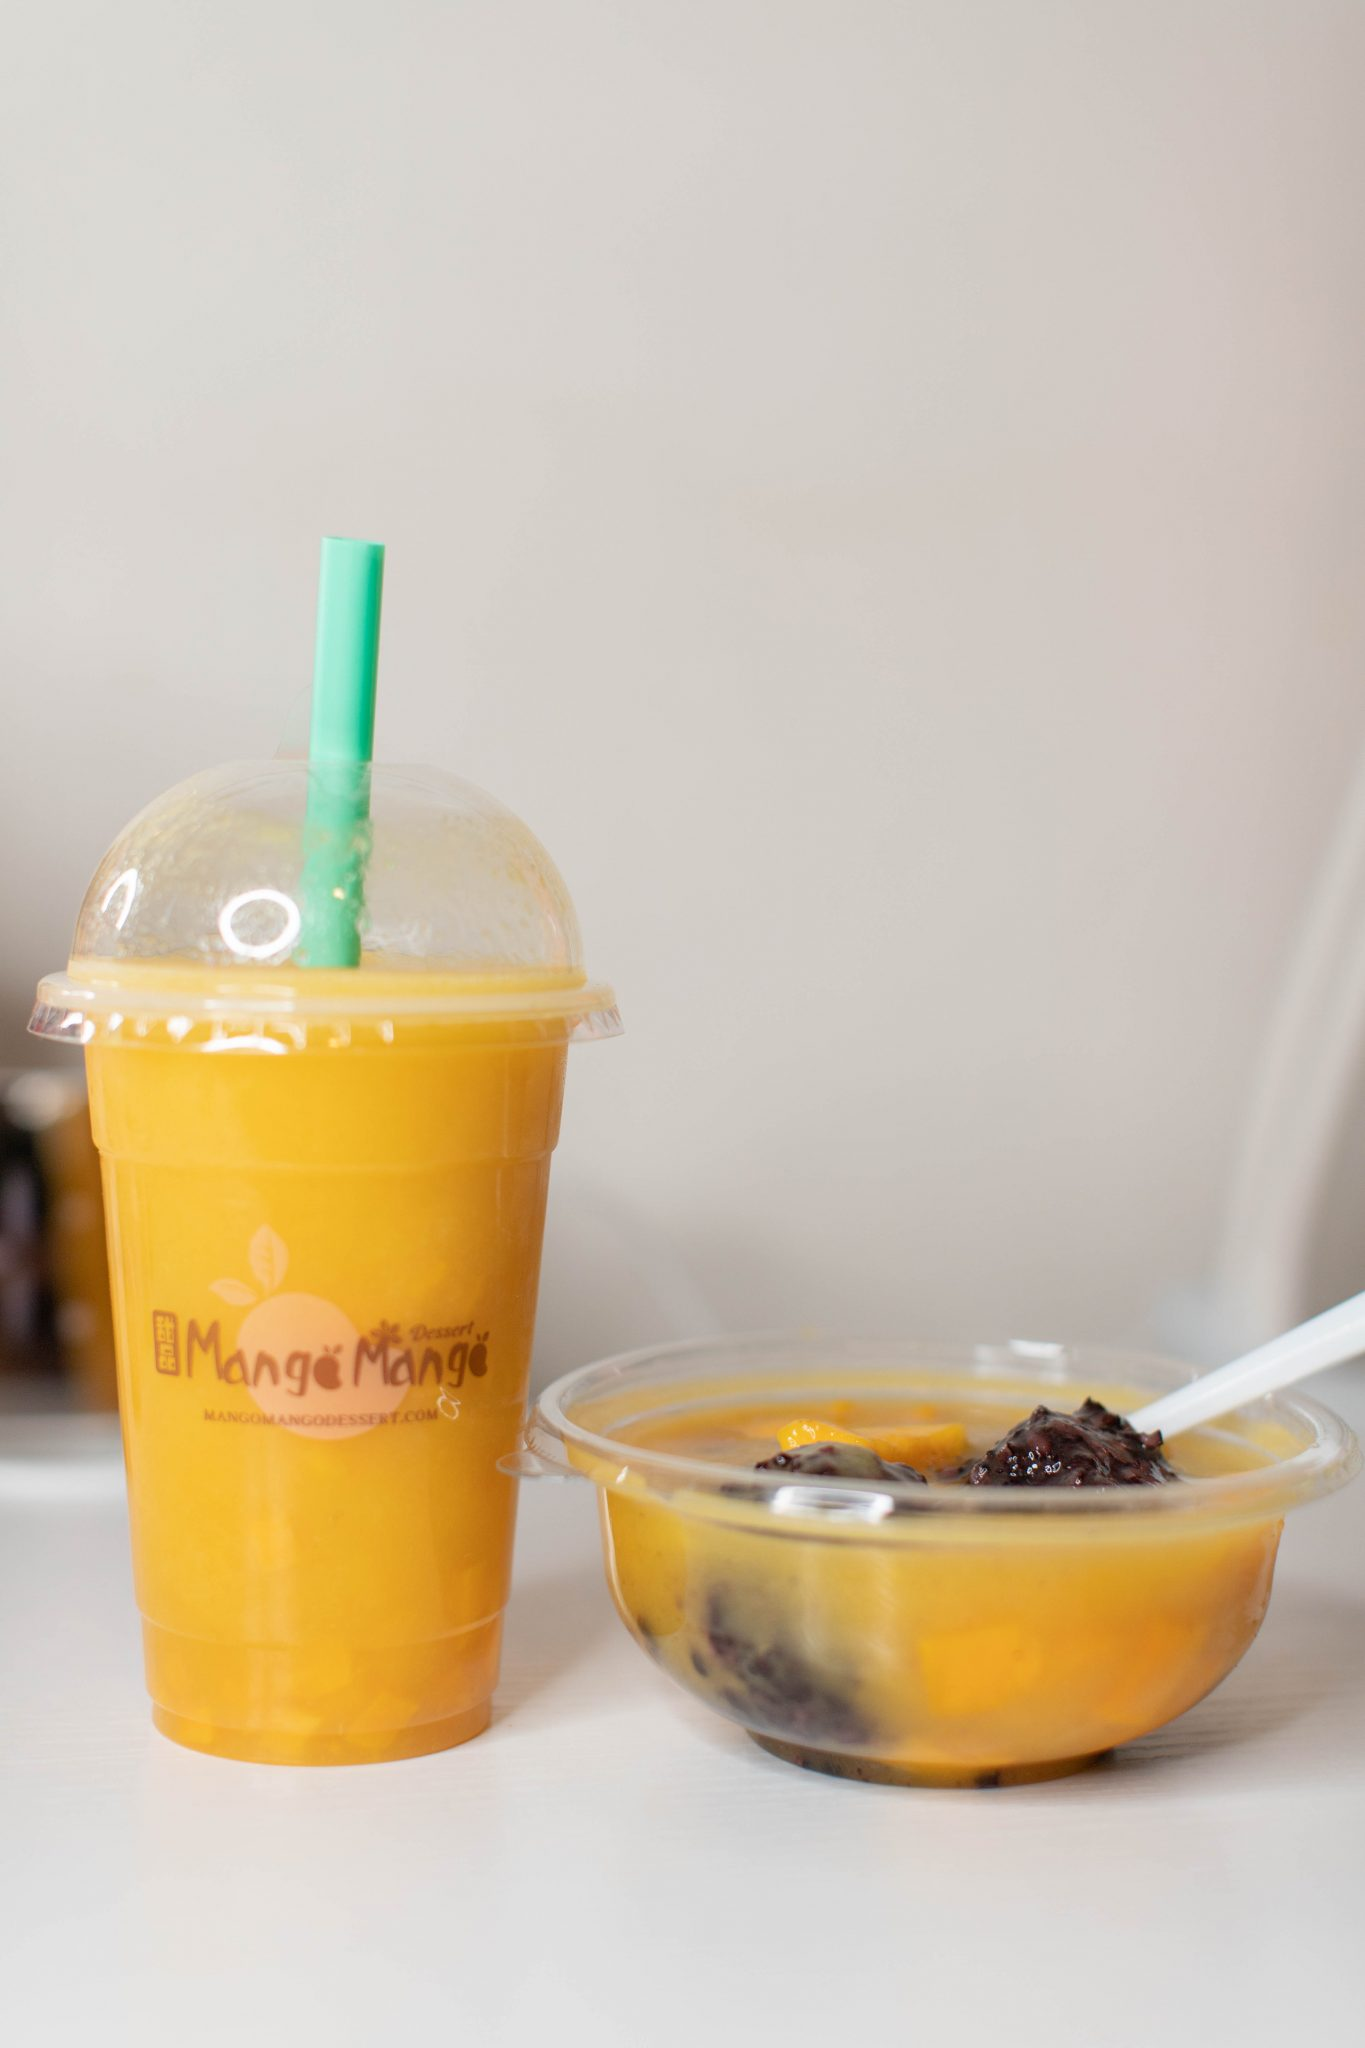 4 Small Businesses to Support in Chinatown NYC by Basically A Mess (image of Mango Mango Dessert restaurant in Chinatown New York City)